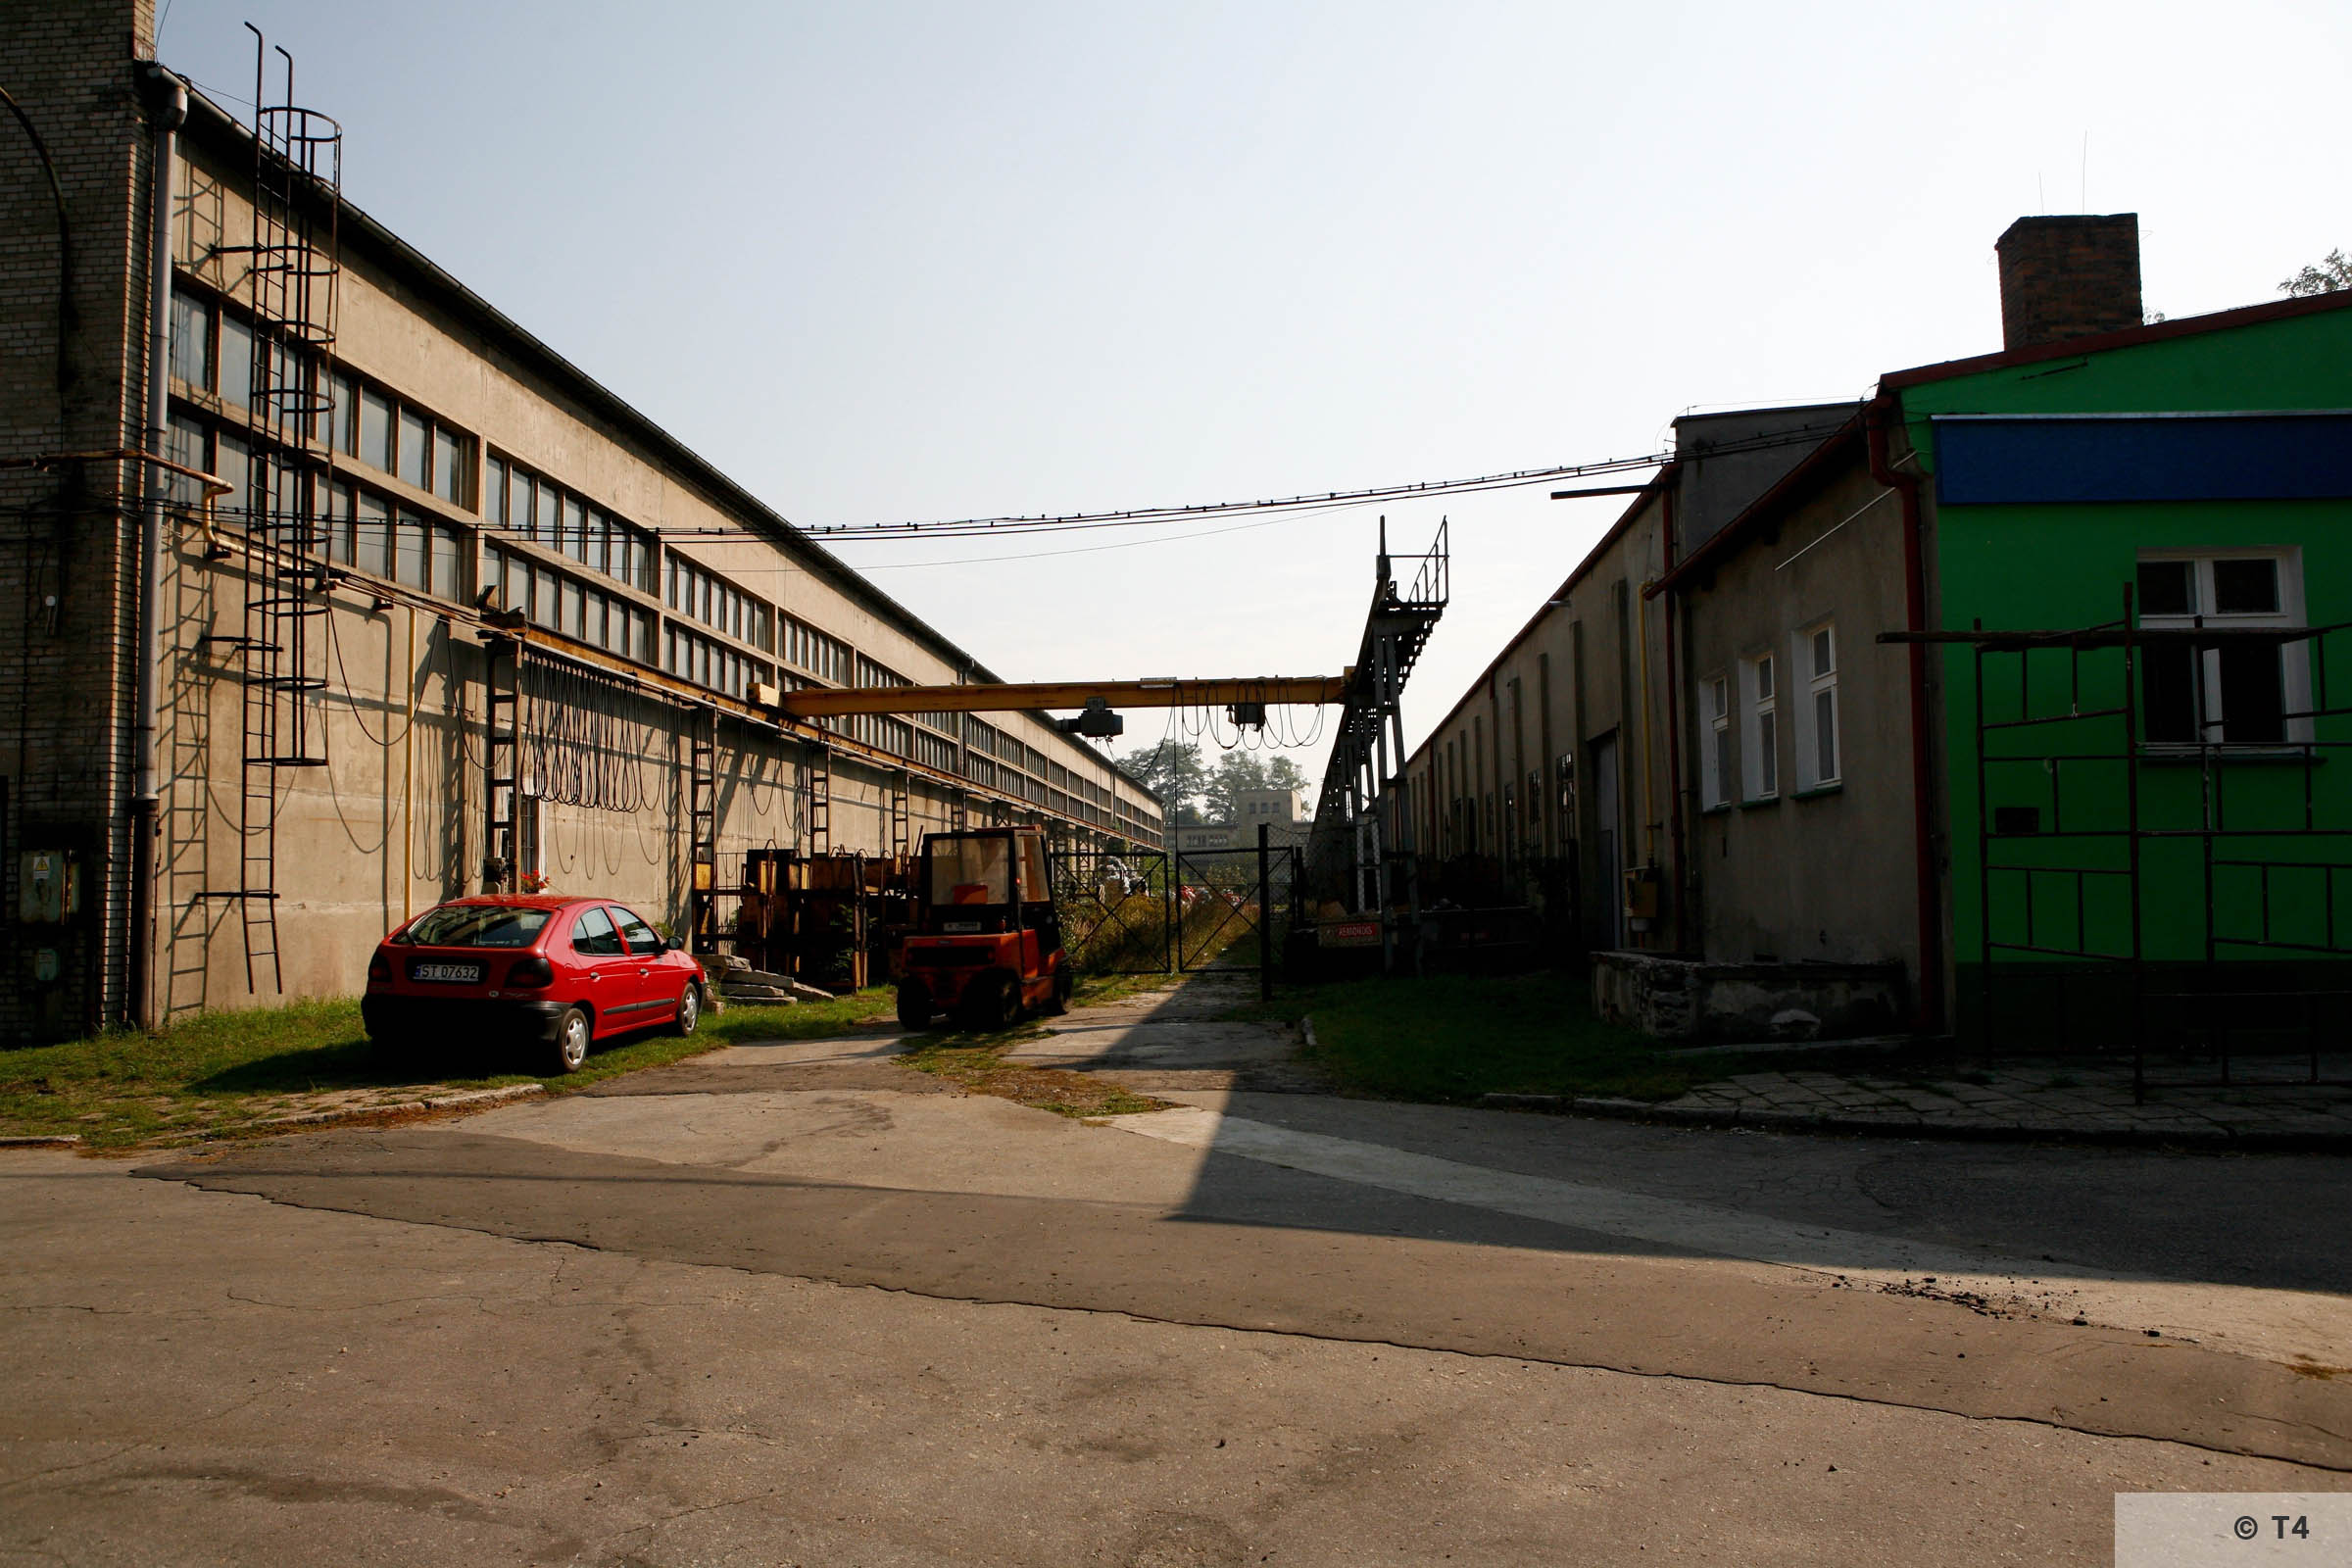 Workshops where prisoners worked. 2006 T4 1486